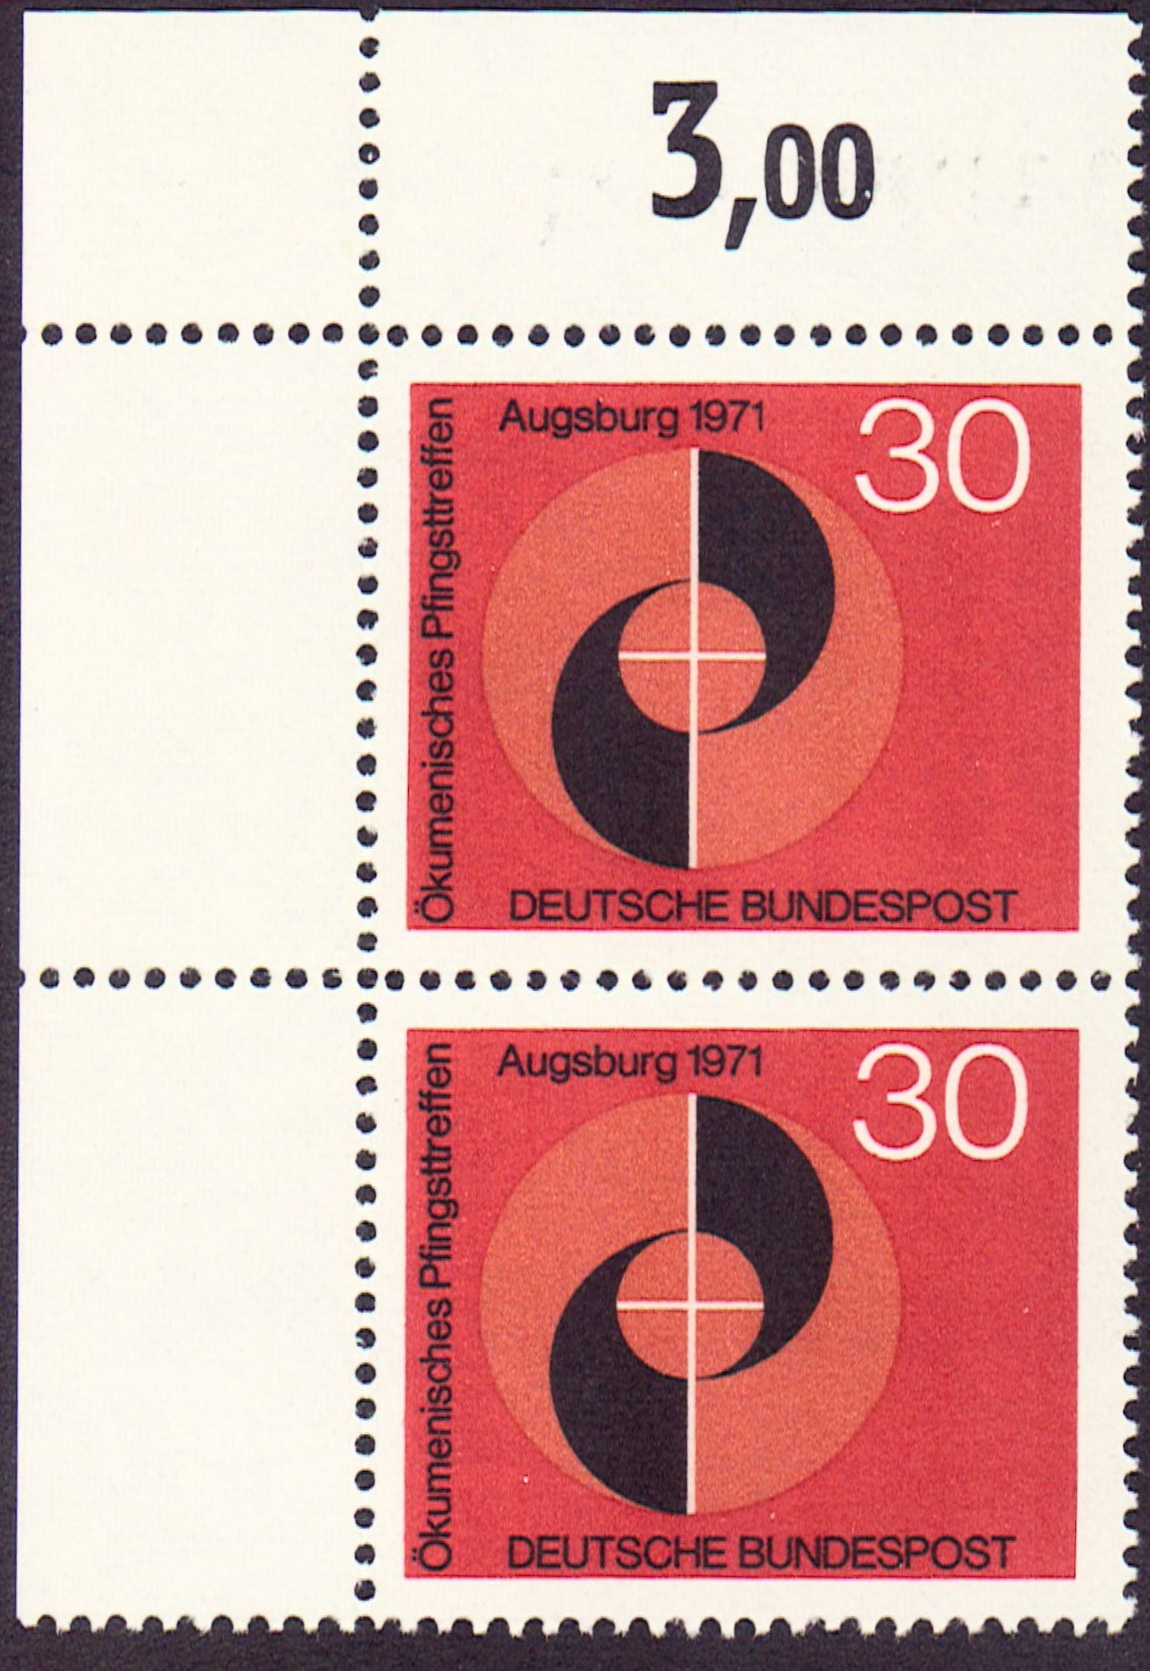 Germany Scott 1071, MNH, Pair, Congress Emblem, Augsburg 1971